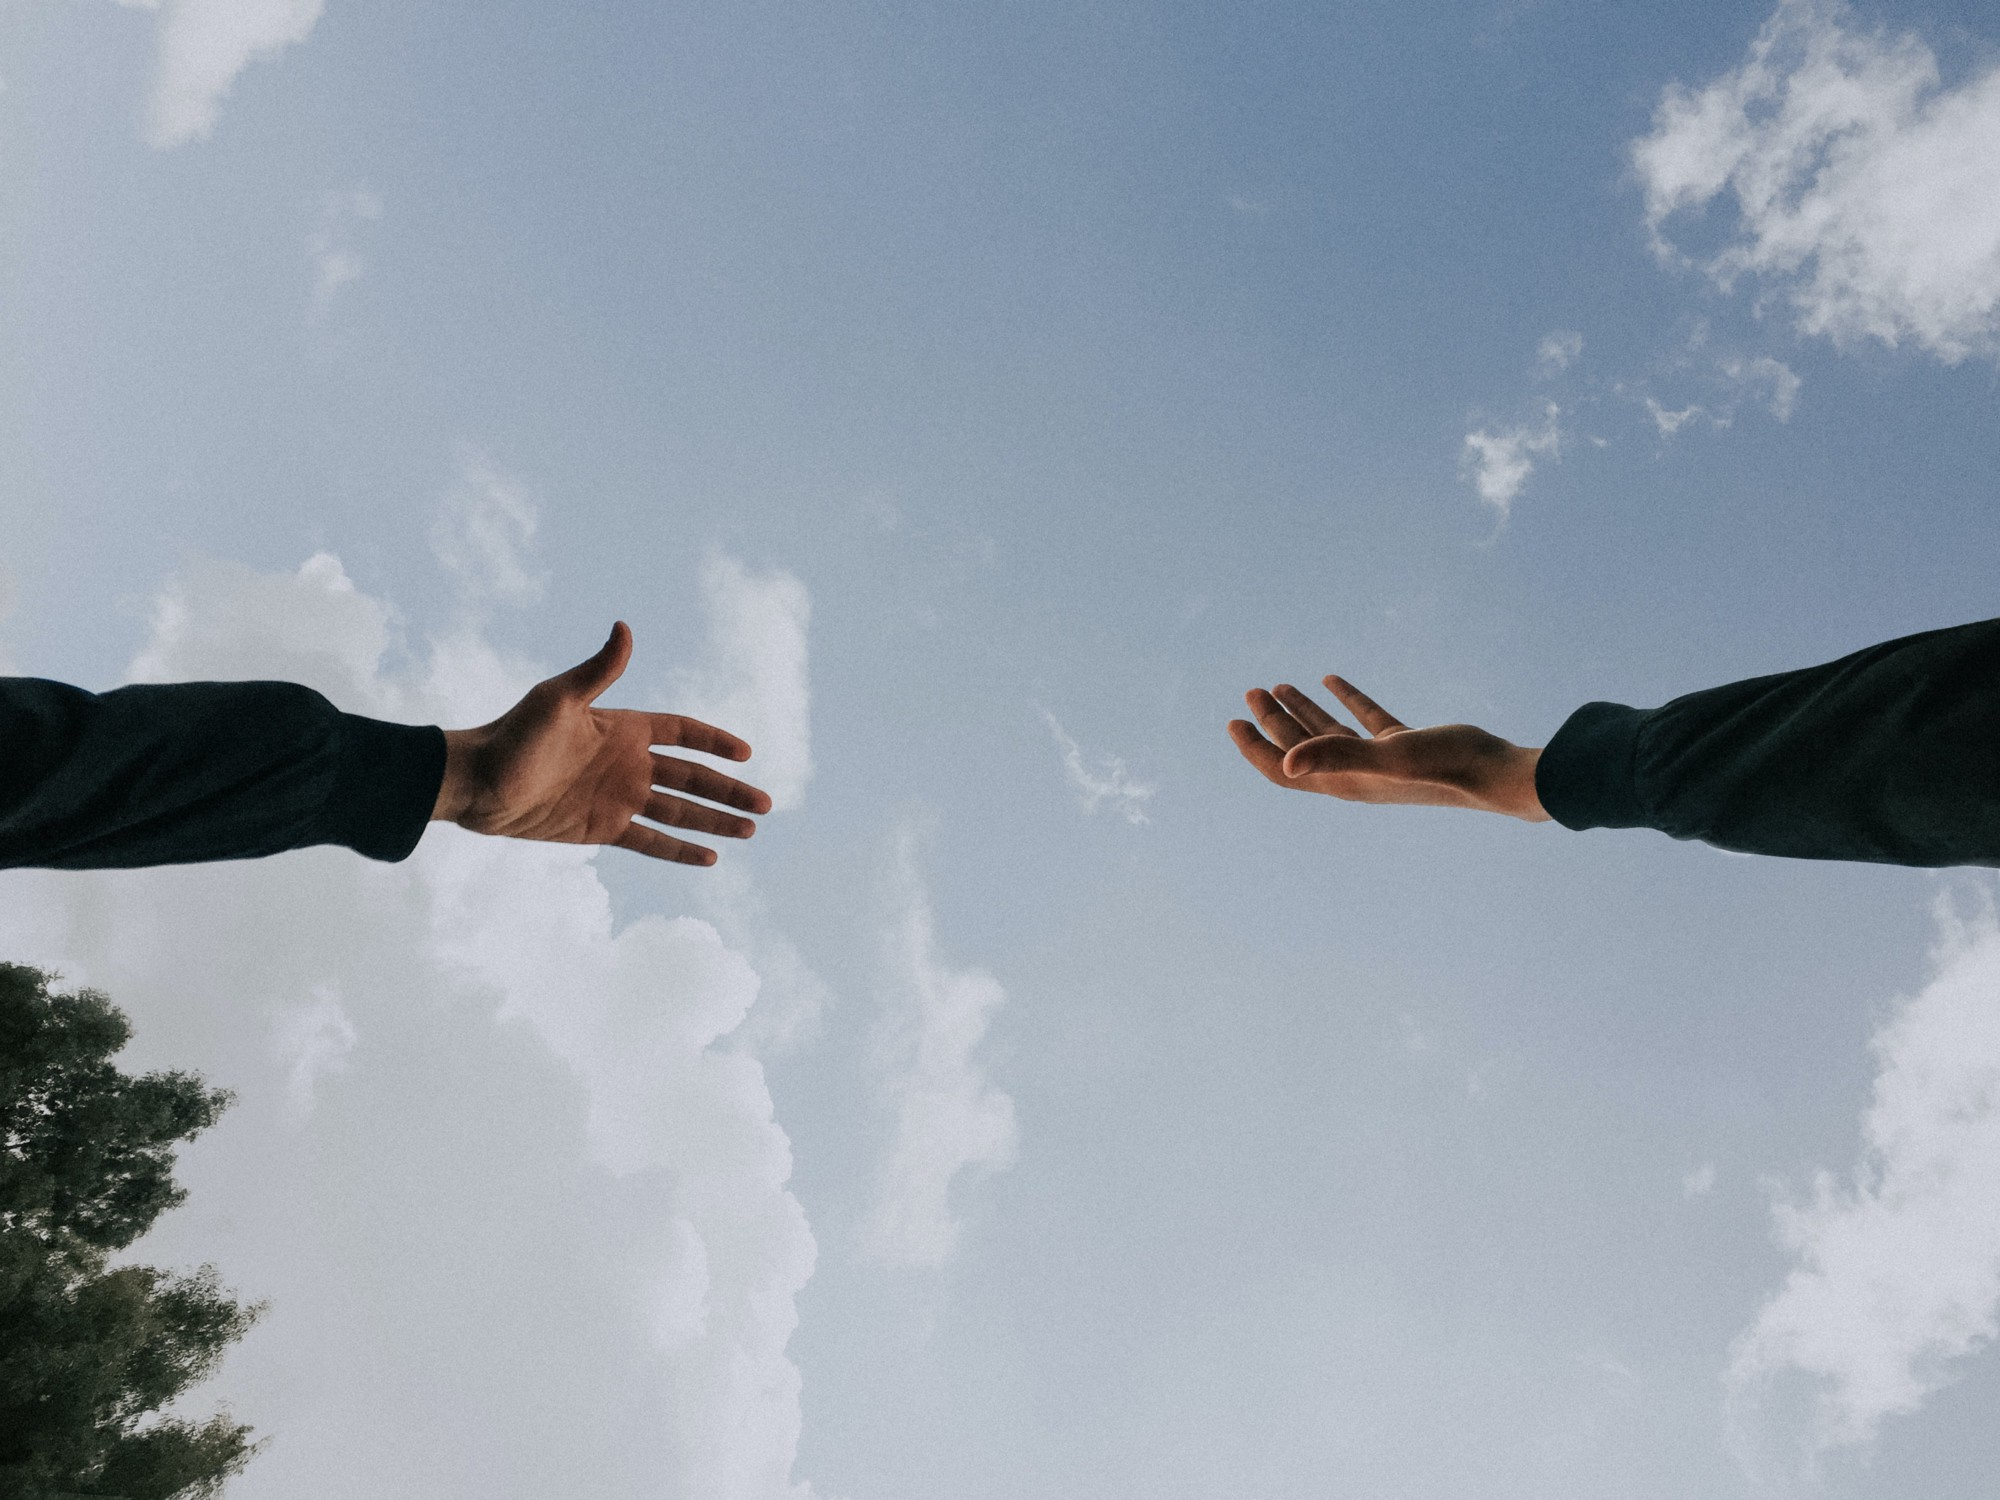 Two hands reaching out to help each other